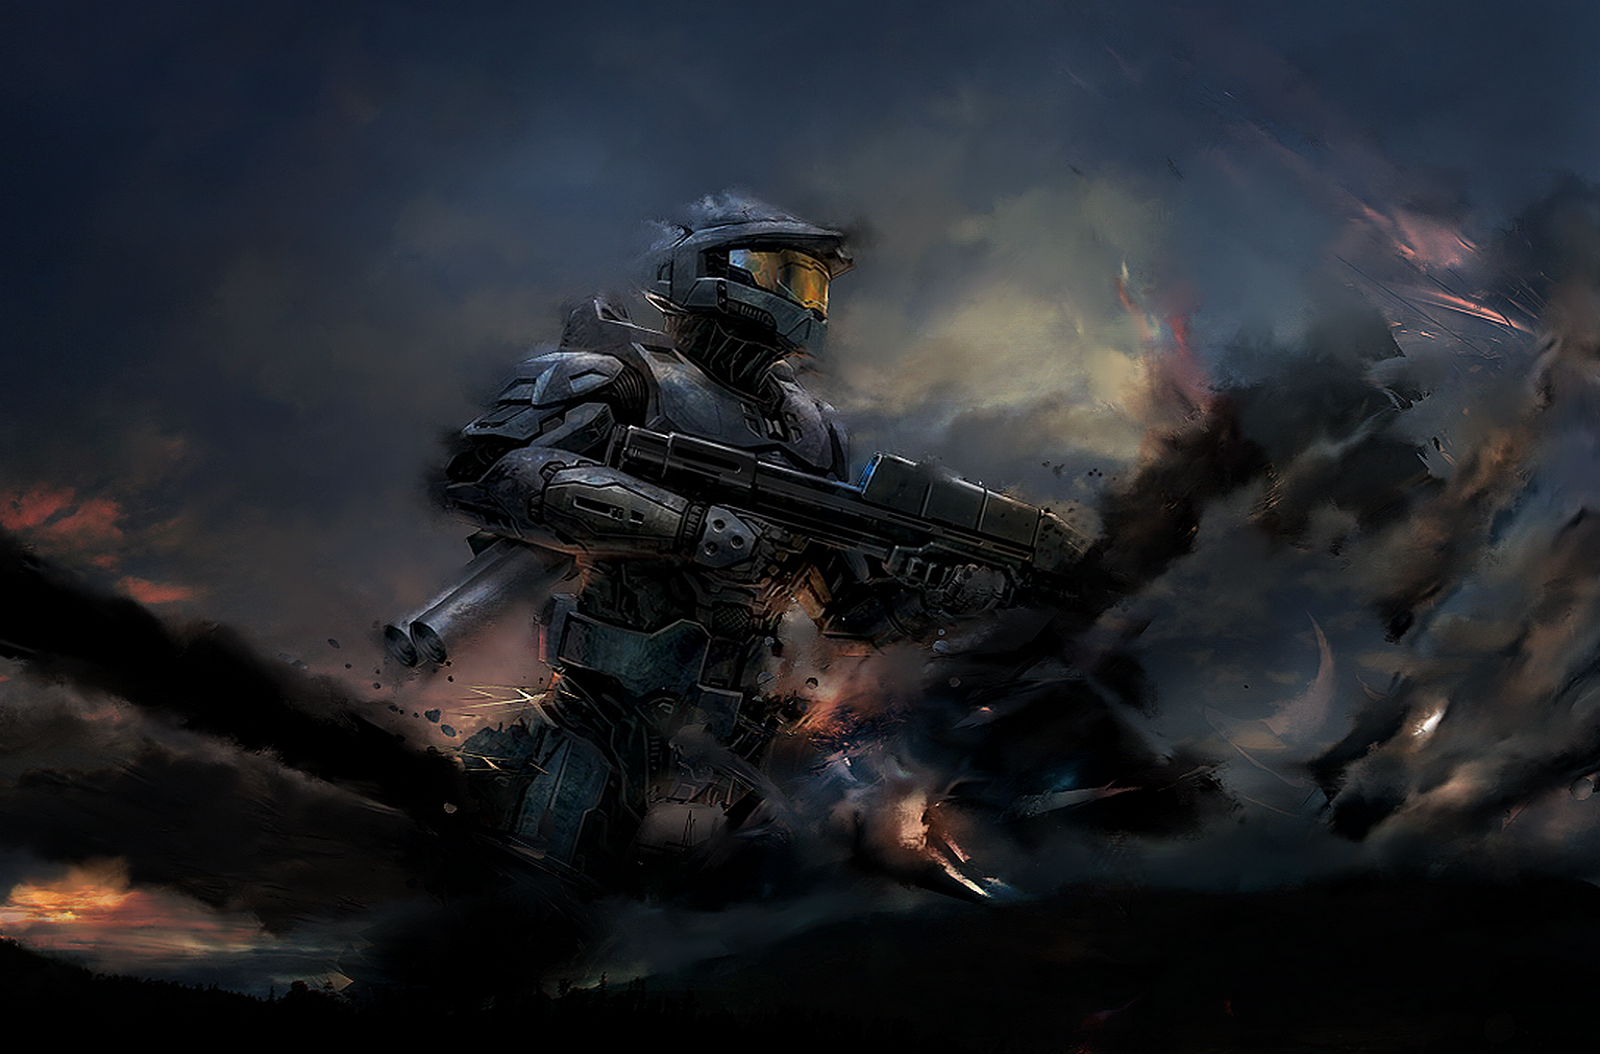 HALO WALLPAPERS 1600x1054